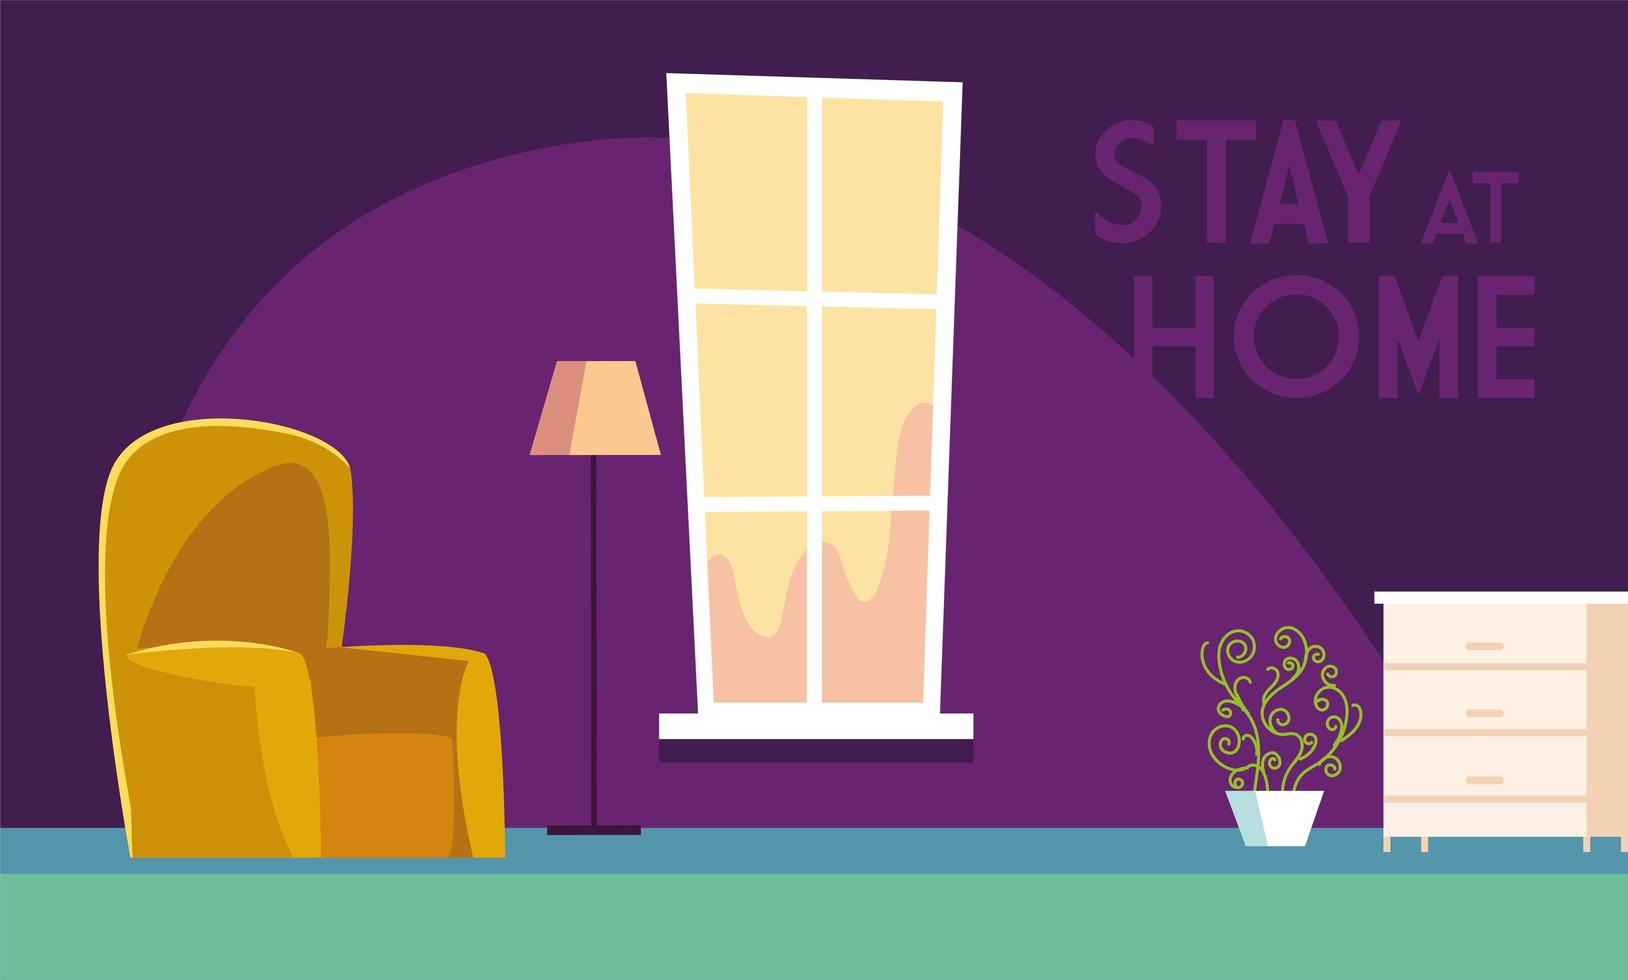 Stay at home text in living room vector